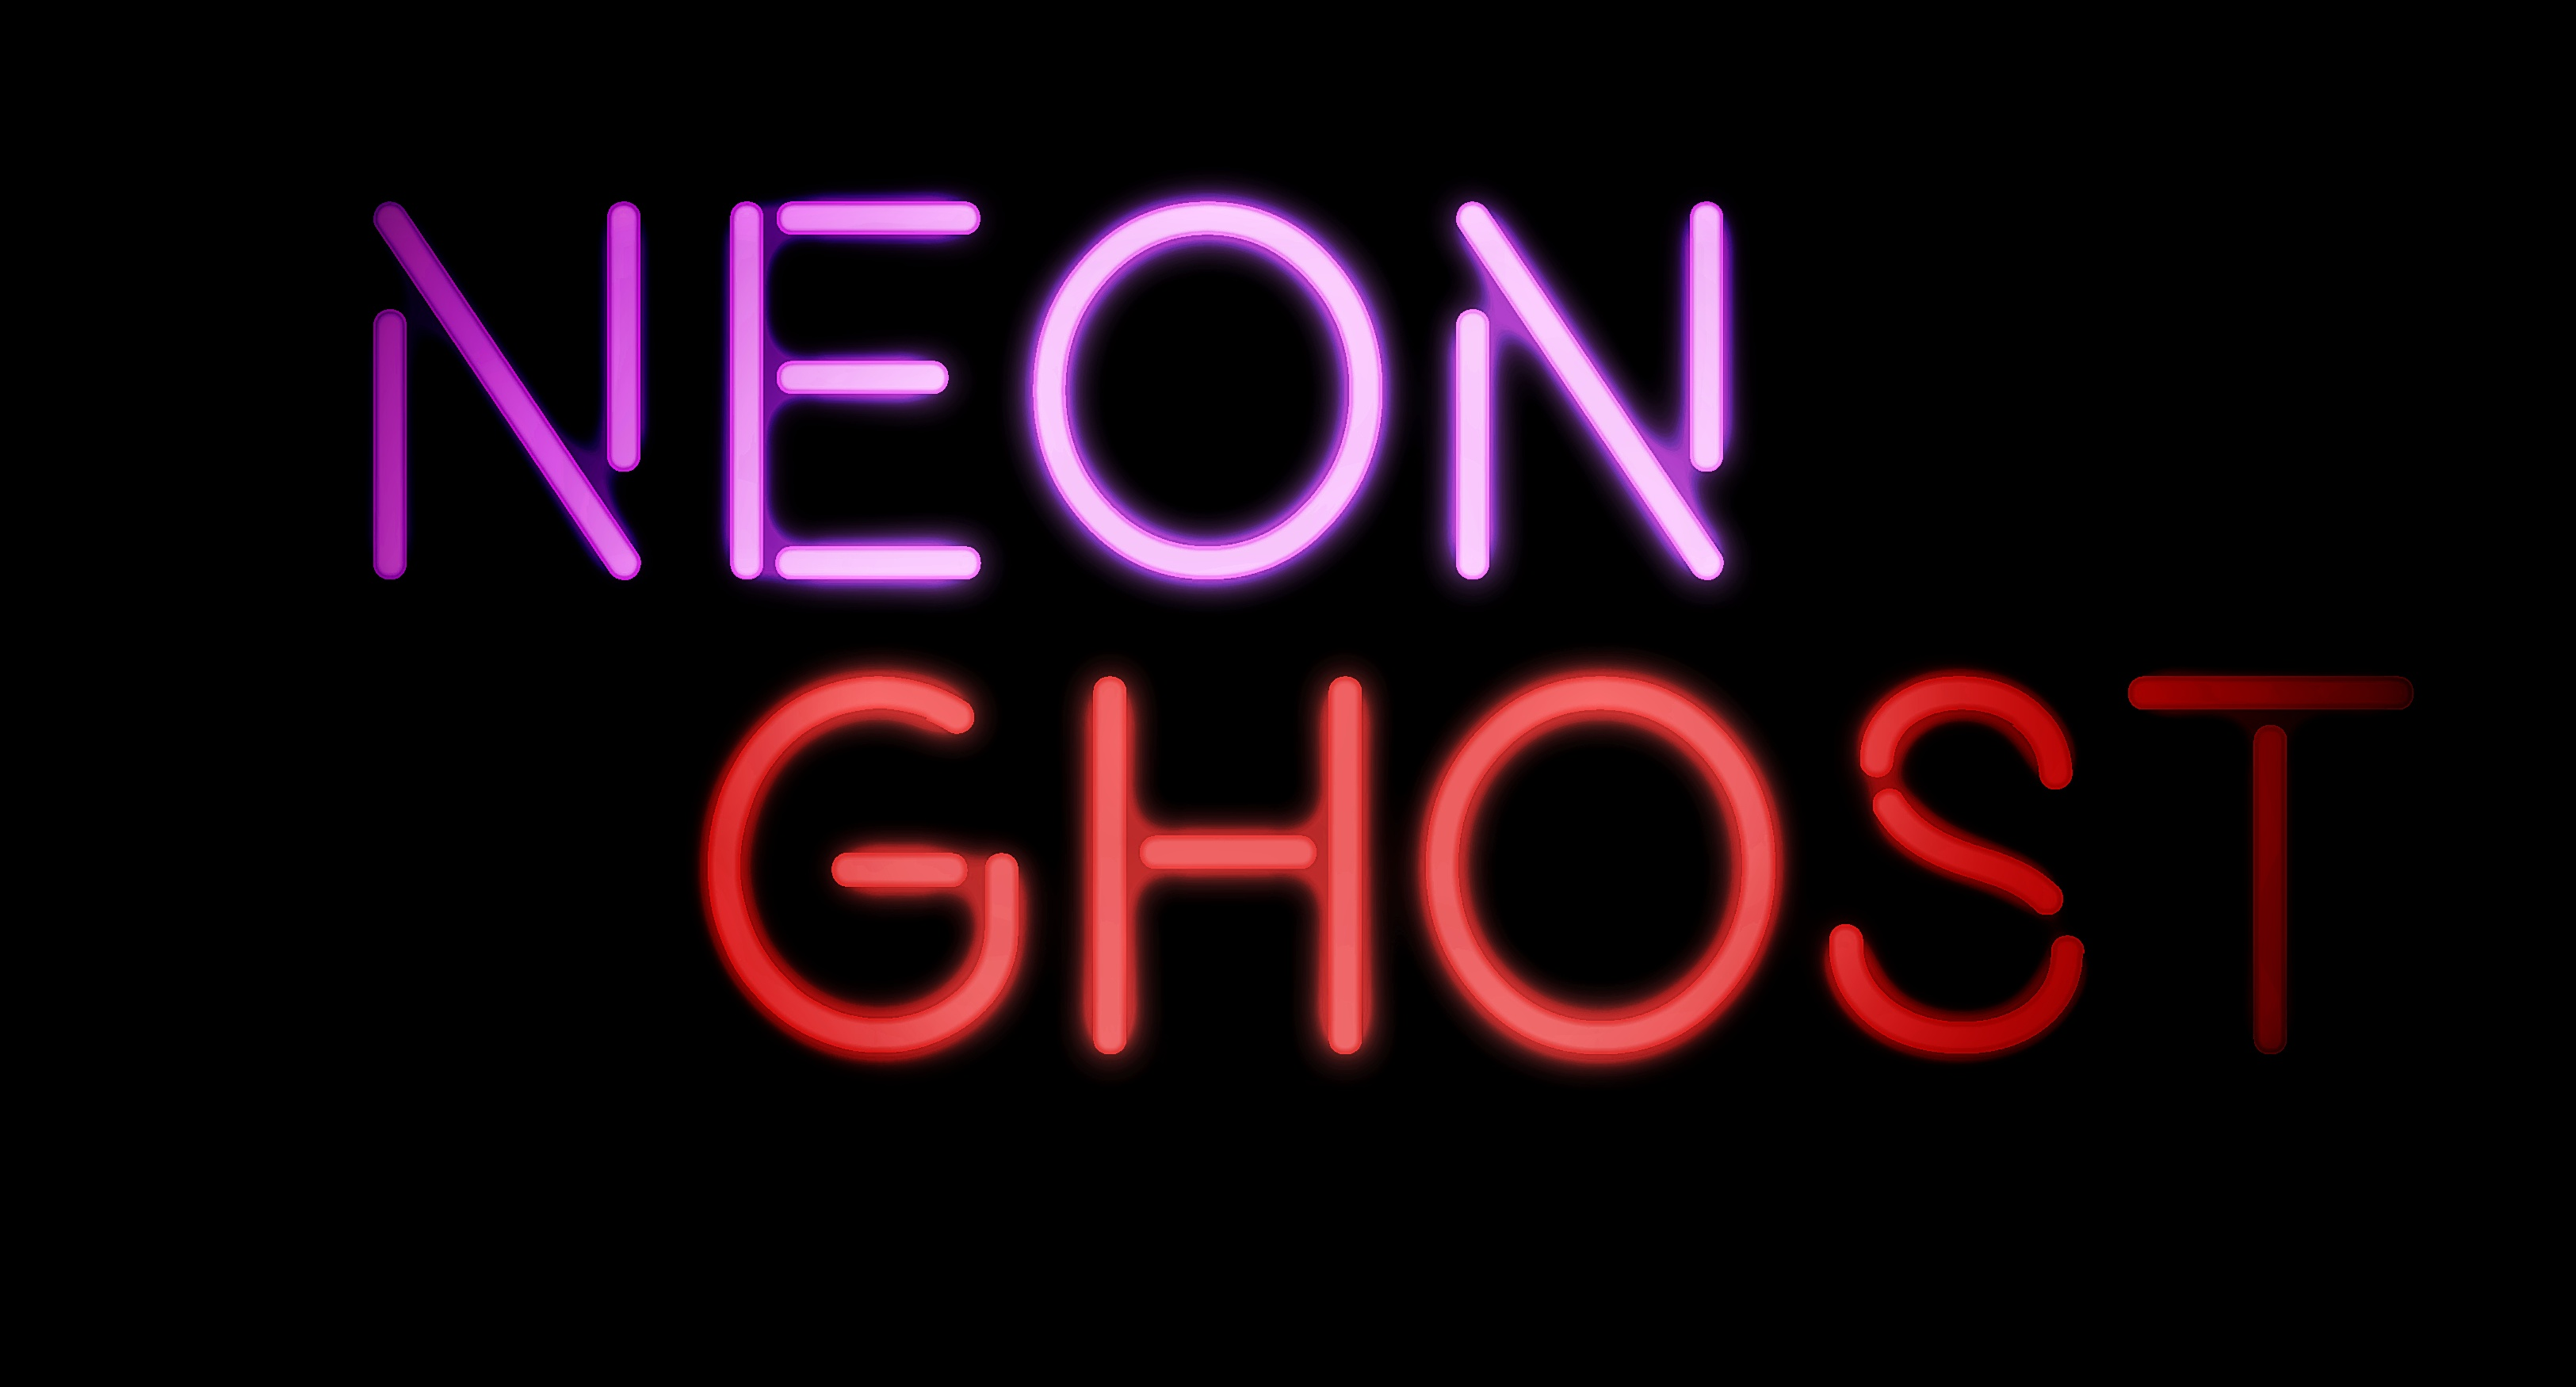 Neon Ghost